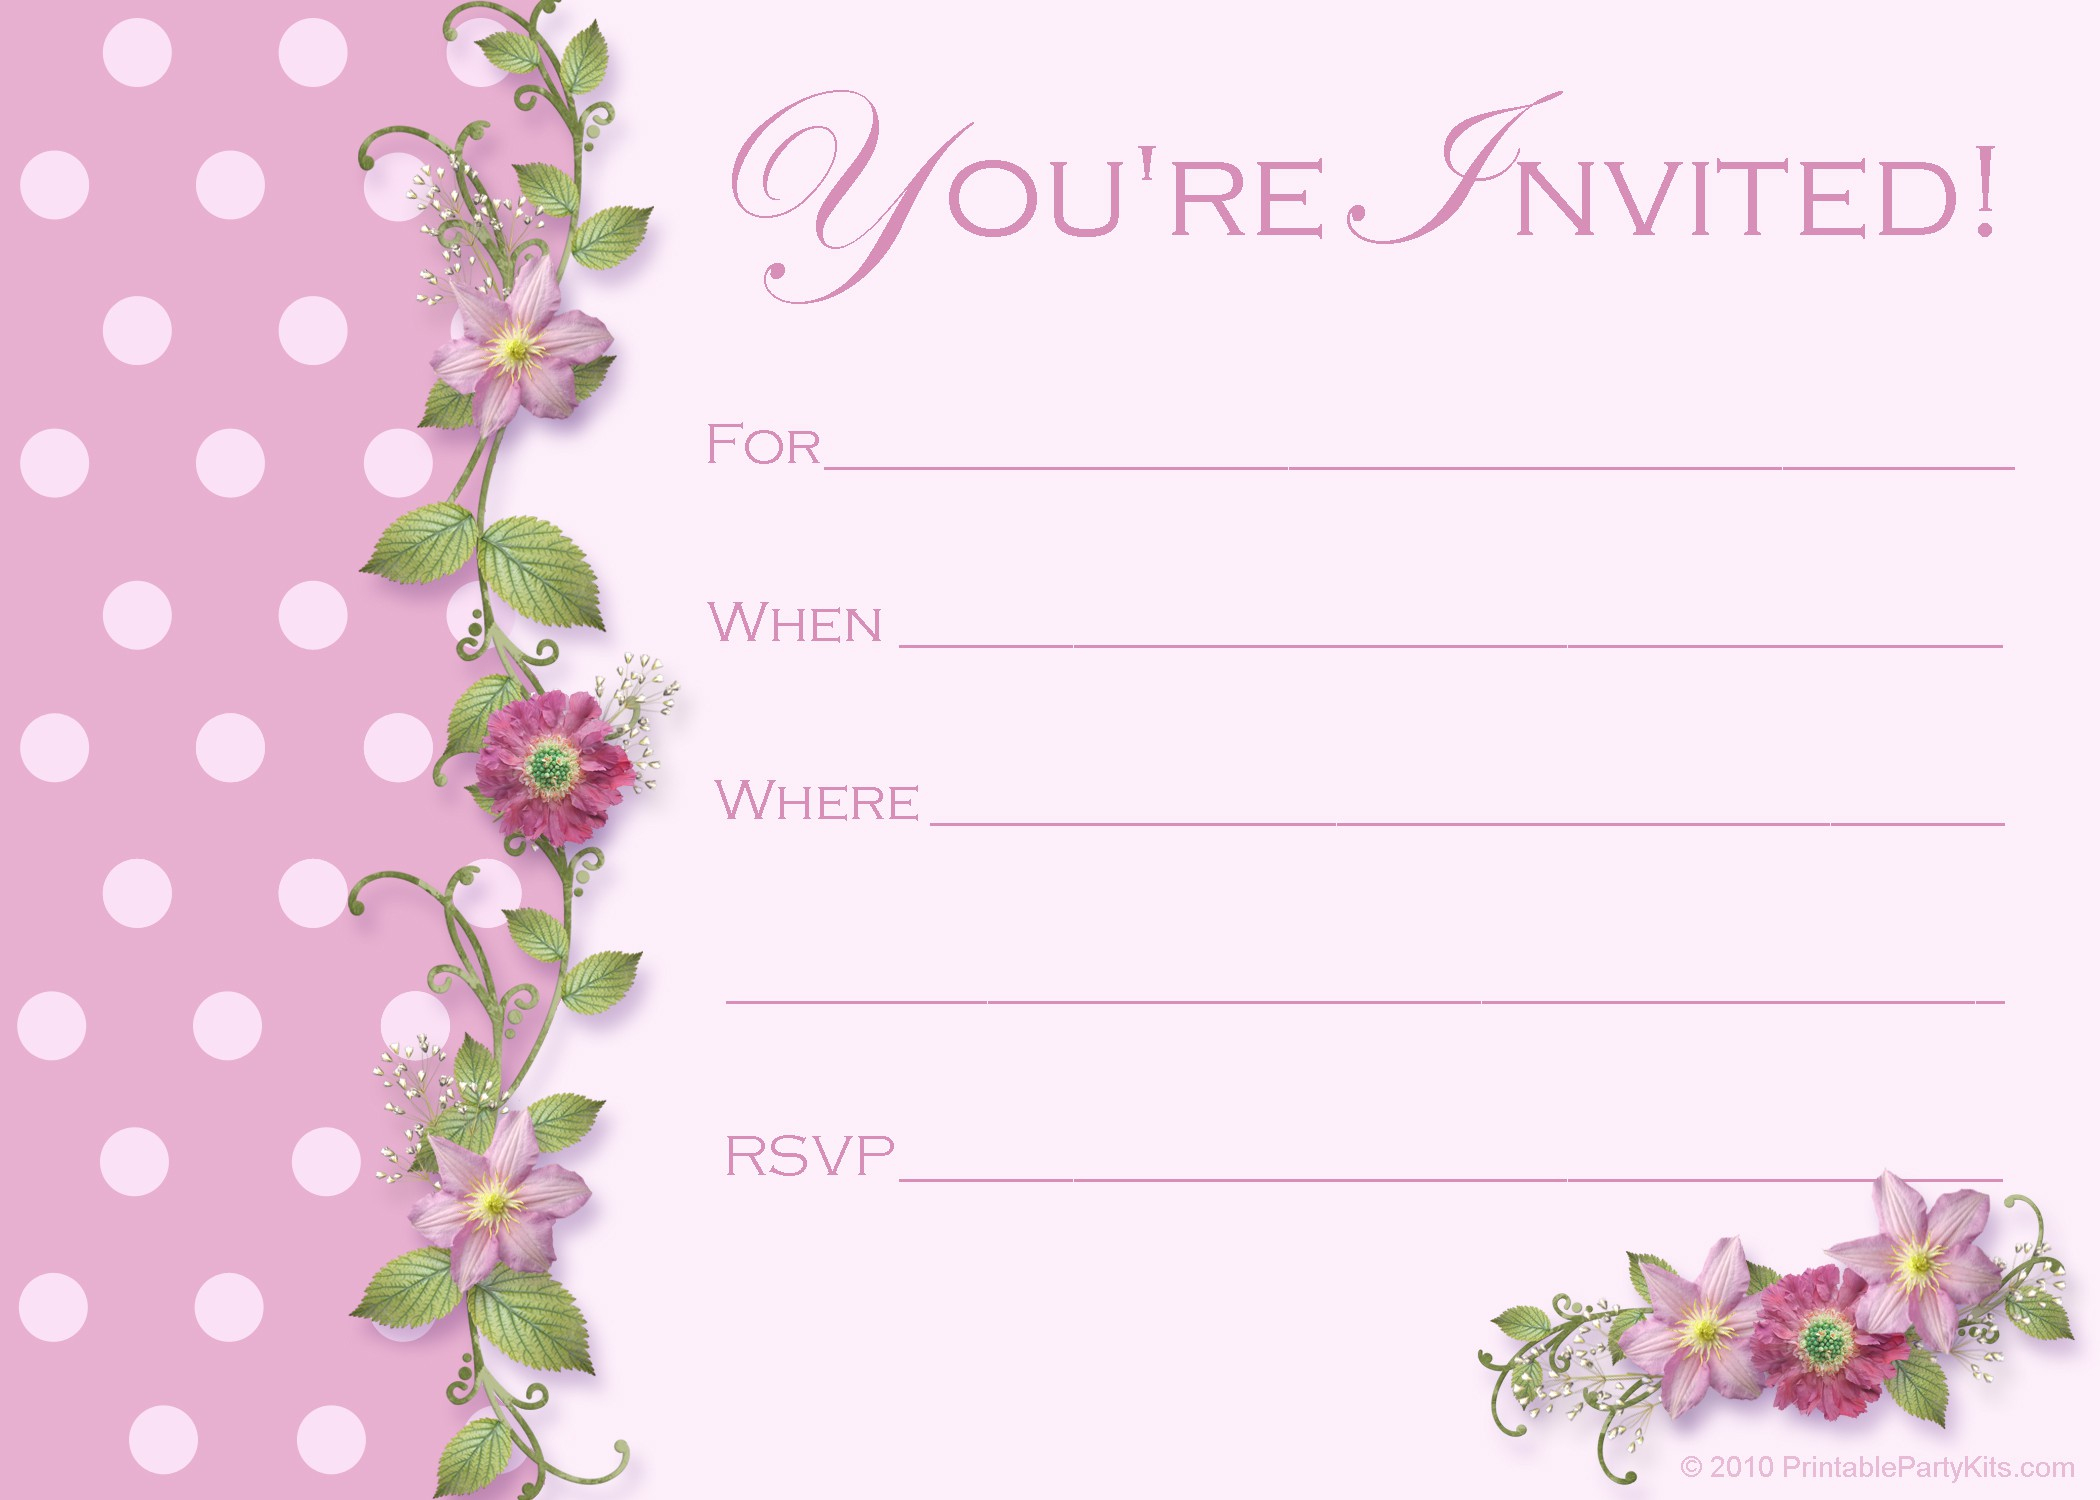 Quinceanera Invitations Templates For Free - Yourweek #547Dddeca25E - Free Printable Quinceanera Invitations